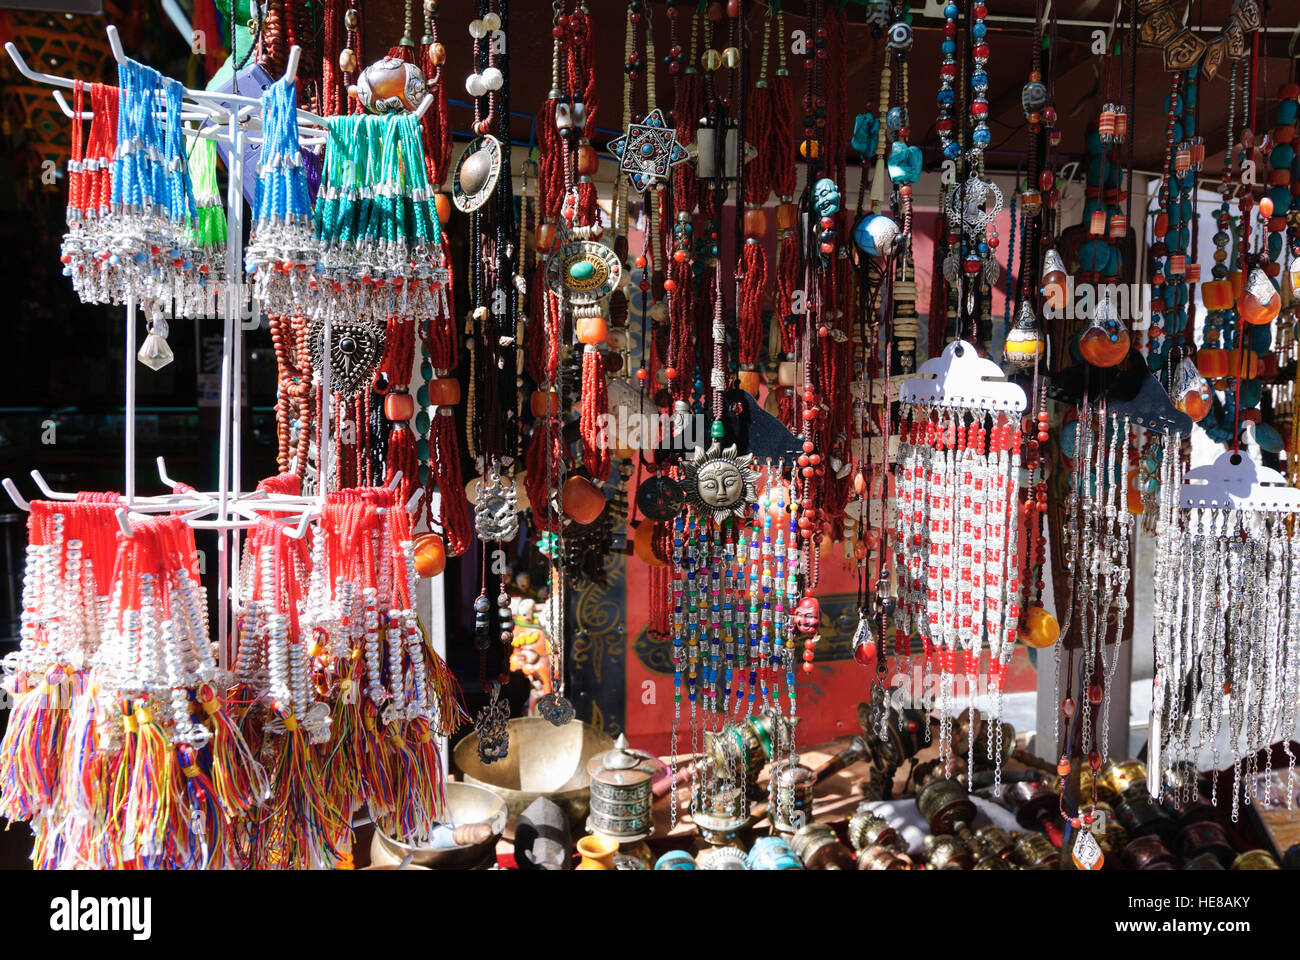 Lhasa: Barkhor ('Middle Circulation Path' around the Jokhang Temple) in the Tibetan Old Town; Sales stand - Stock Image